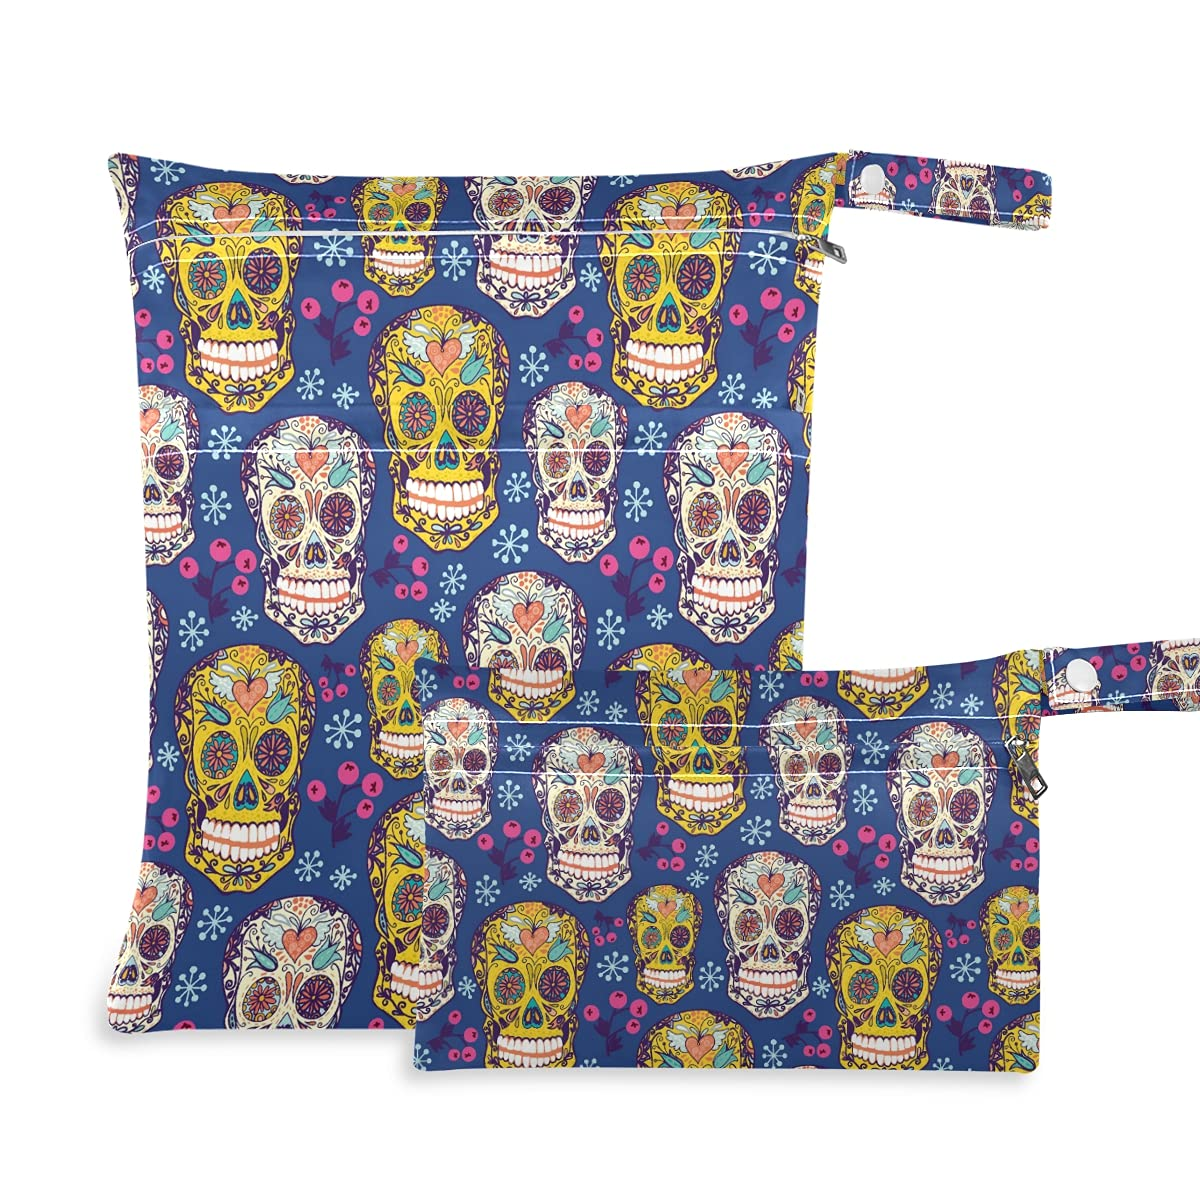 Dead Sugar Skull Wet Dry Swimsui Reusable for Max 87% OFF Diaper Bag Max 86% OFF